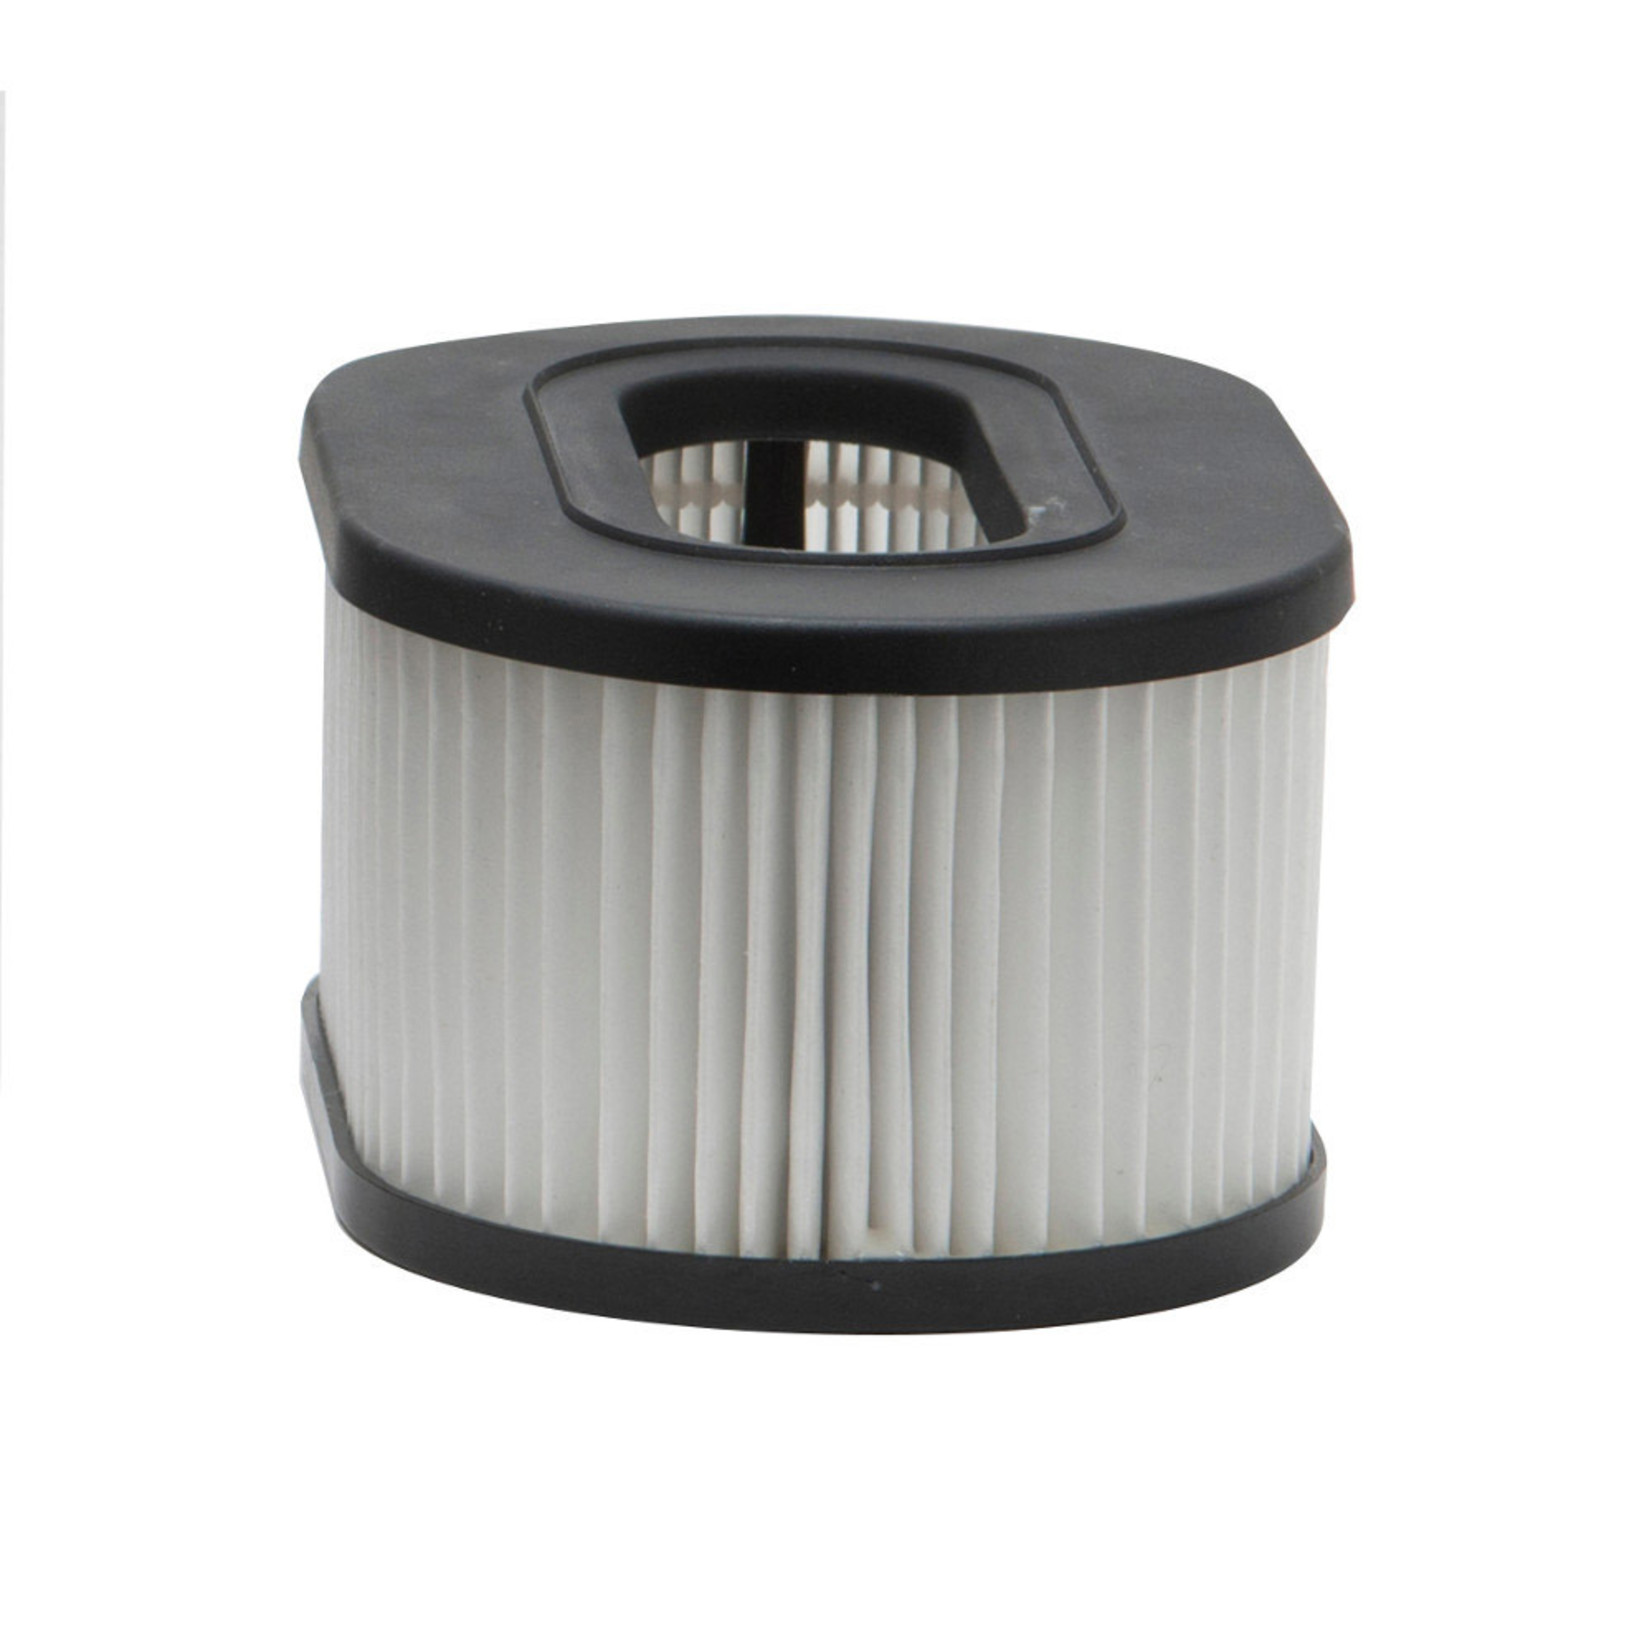 3M 3M Replacement Filter for Hoover Fold Away